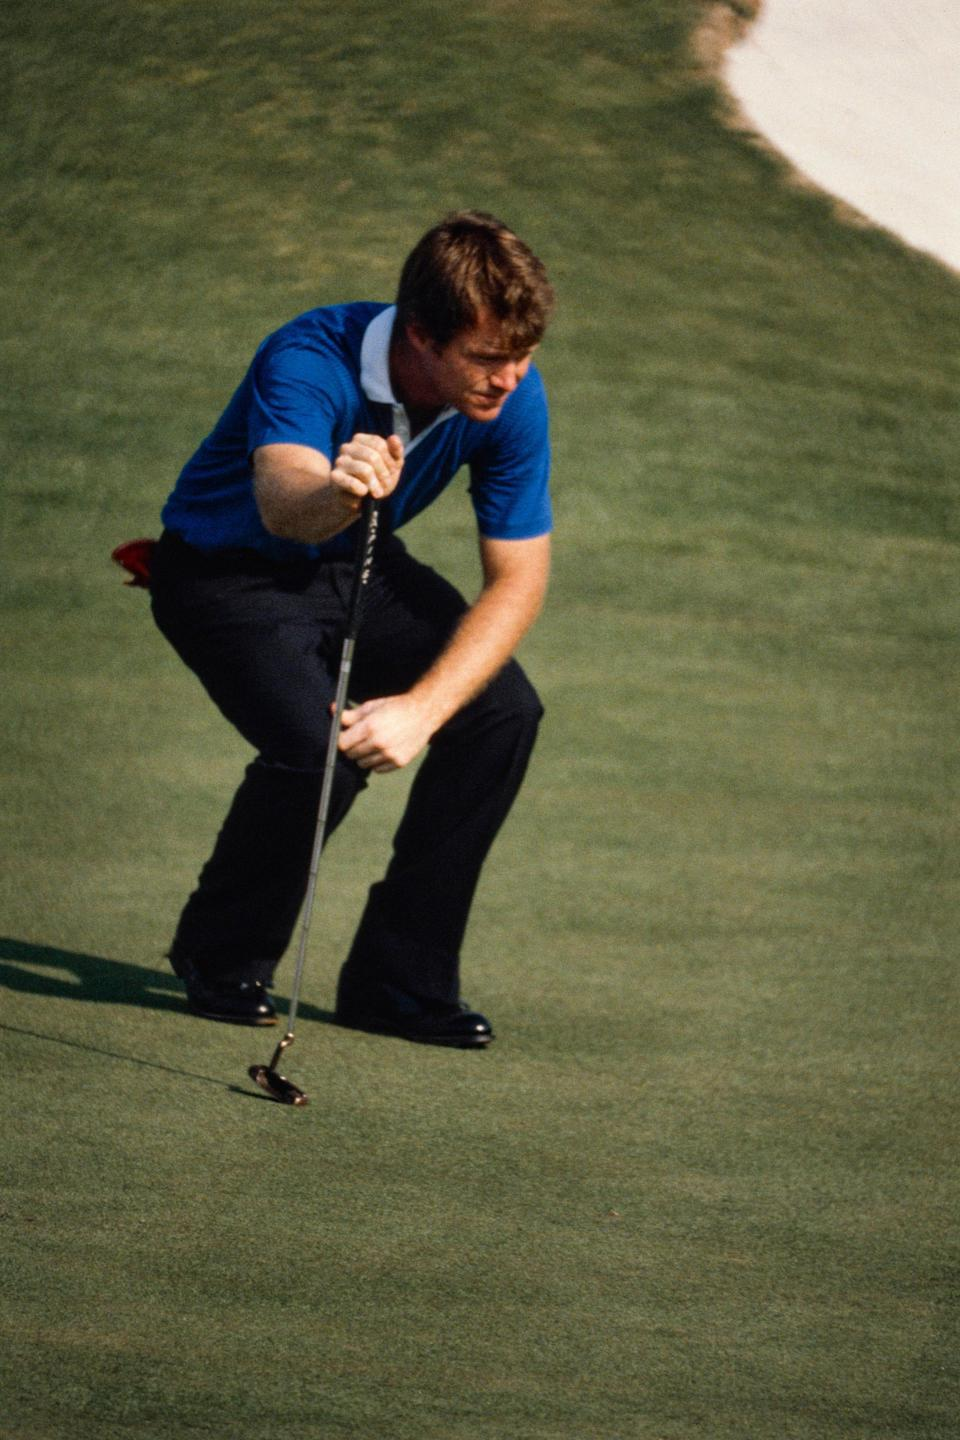 Tom Watson lining up a putt at Augusta National on Friday, April 10, 1981.